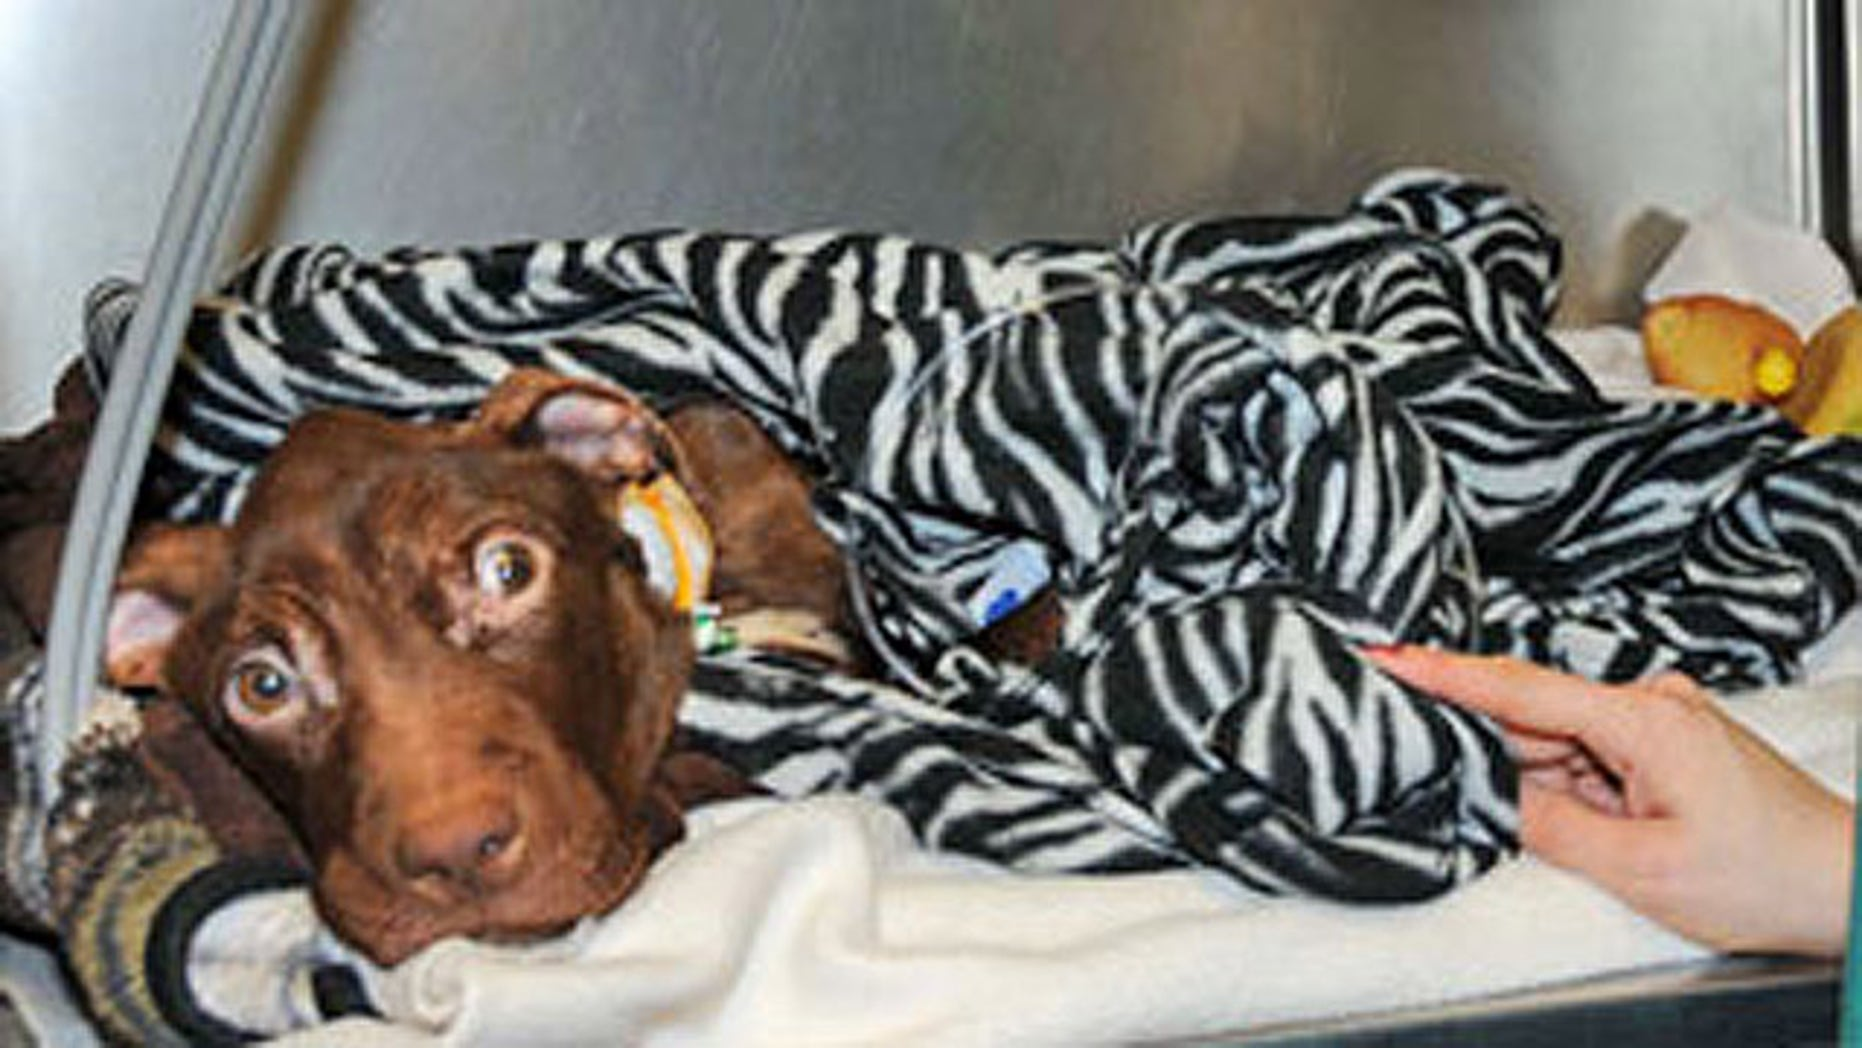 Patrick the pit bull was found starved and barely alive inside a garbage chute at the Garden Spiers apartment complex in Newark, N.J.,  on March 16 (AHS).